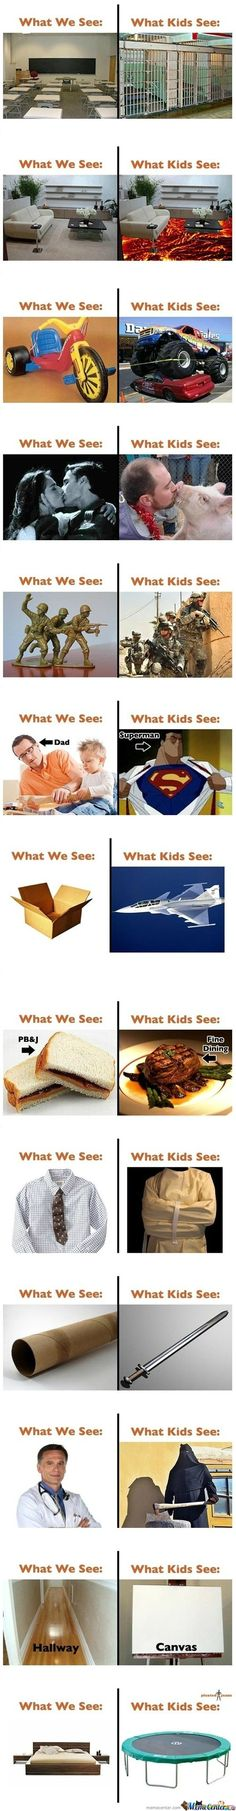 Adult vision vs. kid vision